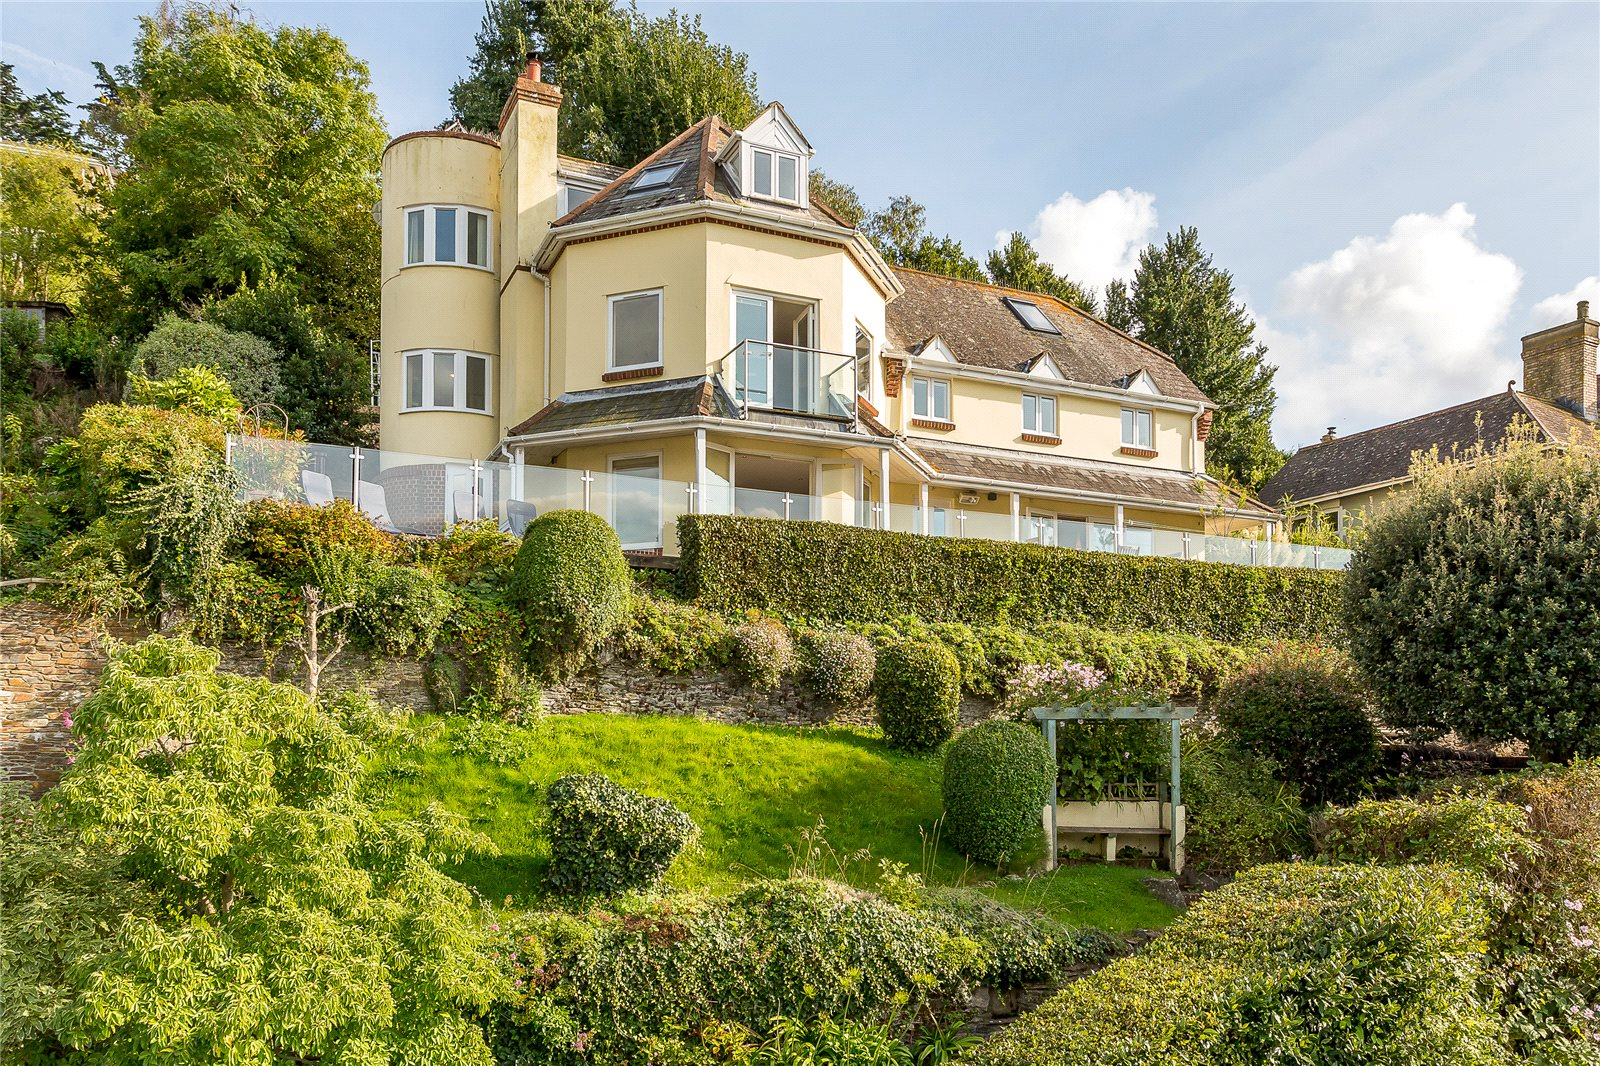 Villa per Vendita alle ore Higher Street, Kingswear, Dartmouth, Devon, TQ6 Dartmouth, Inghilterra